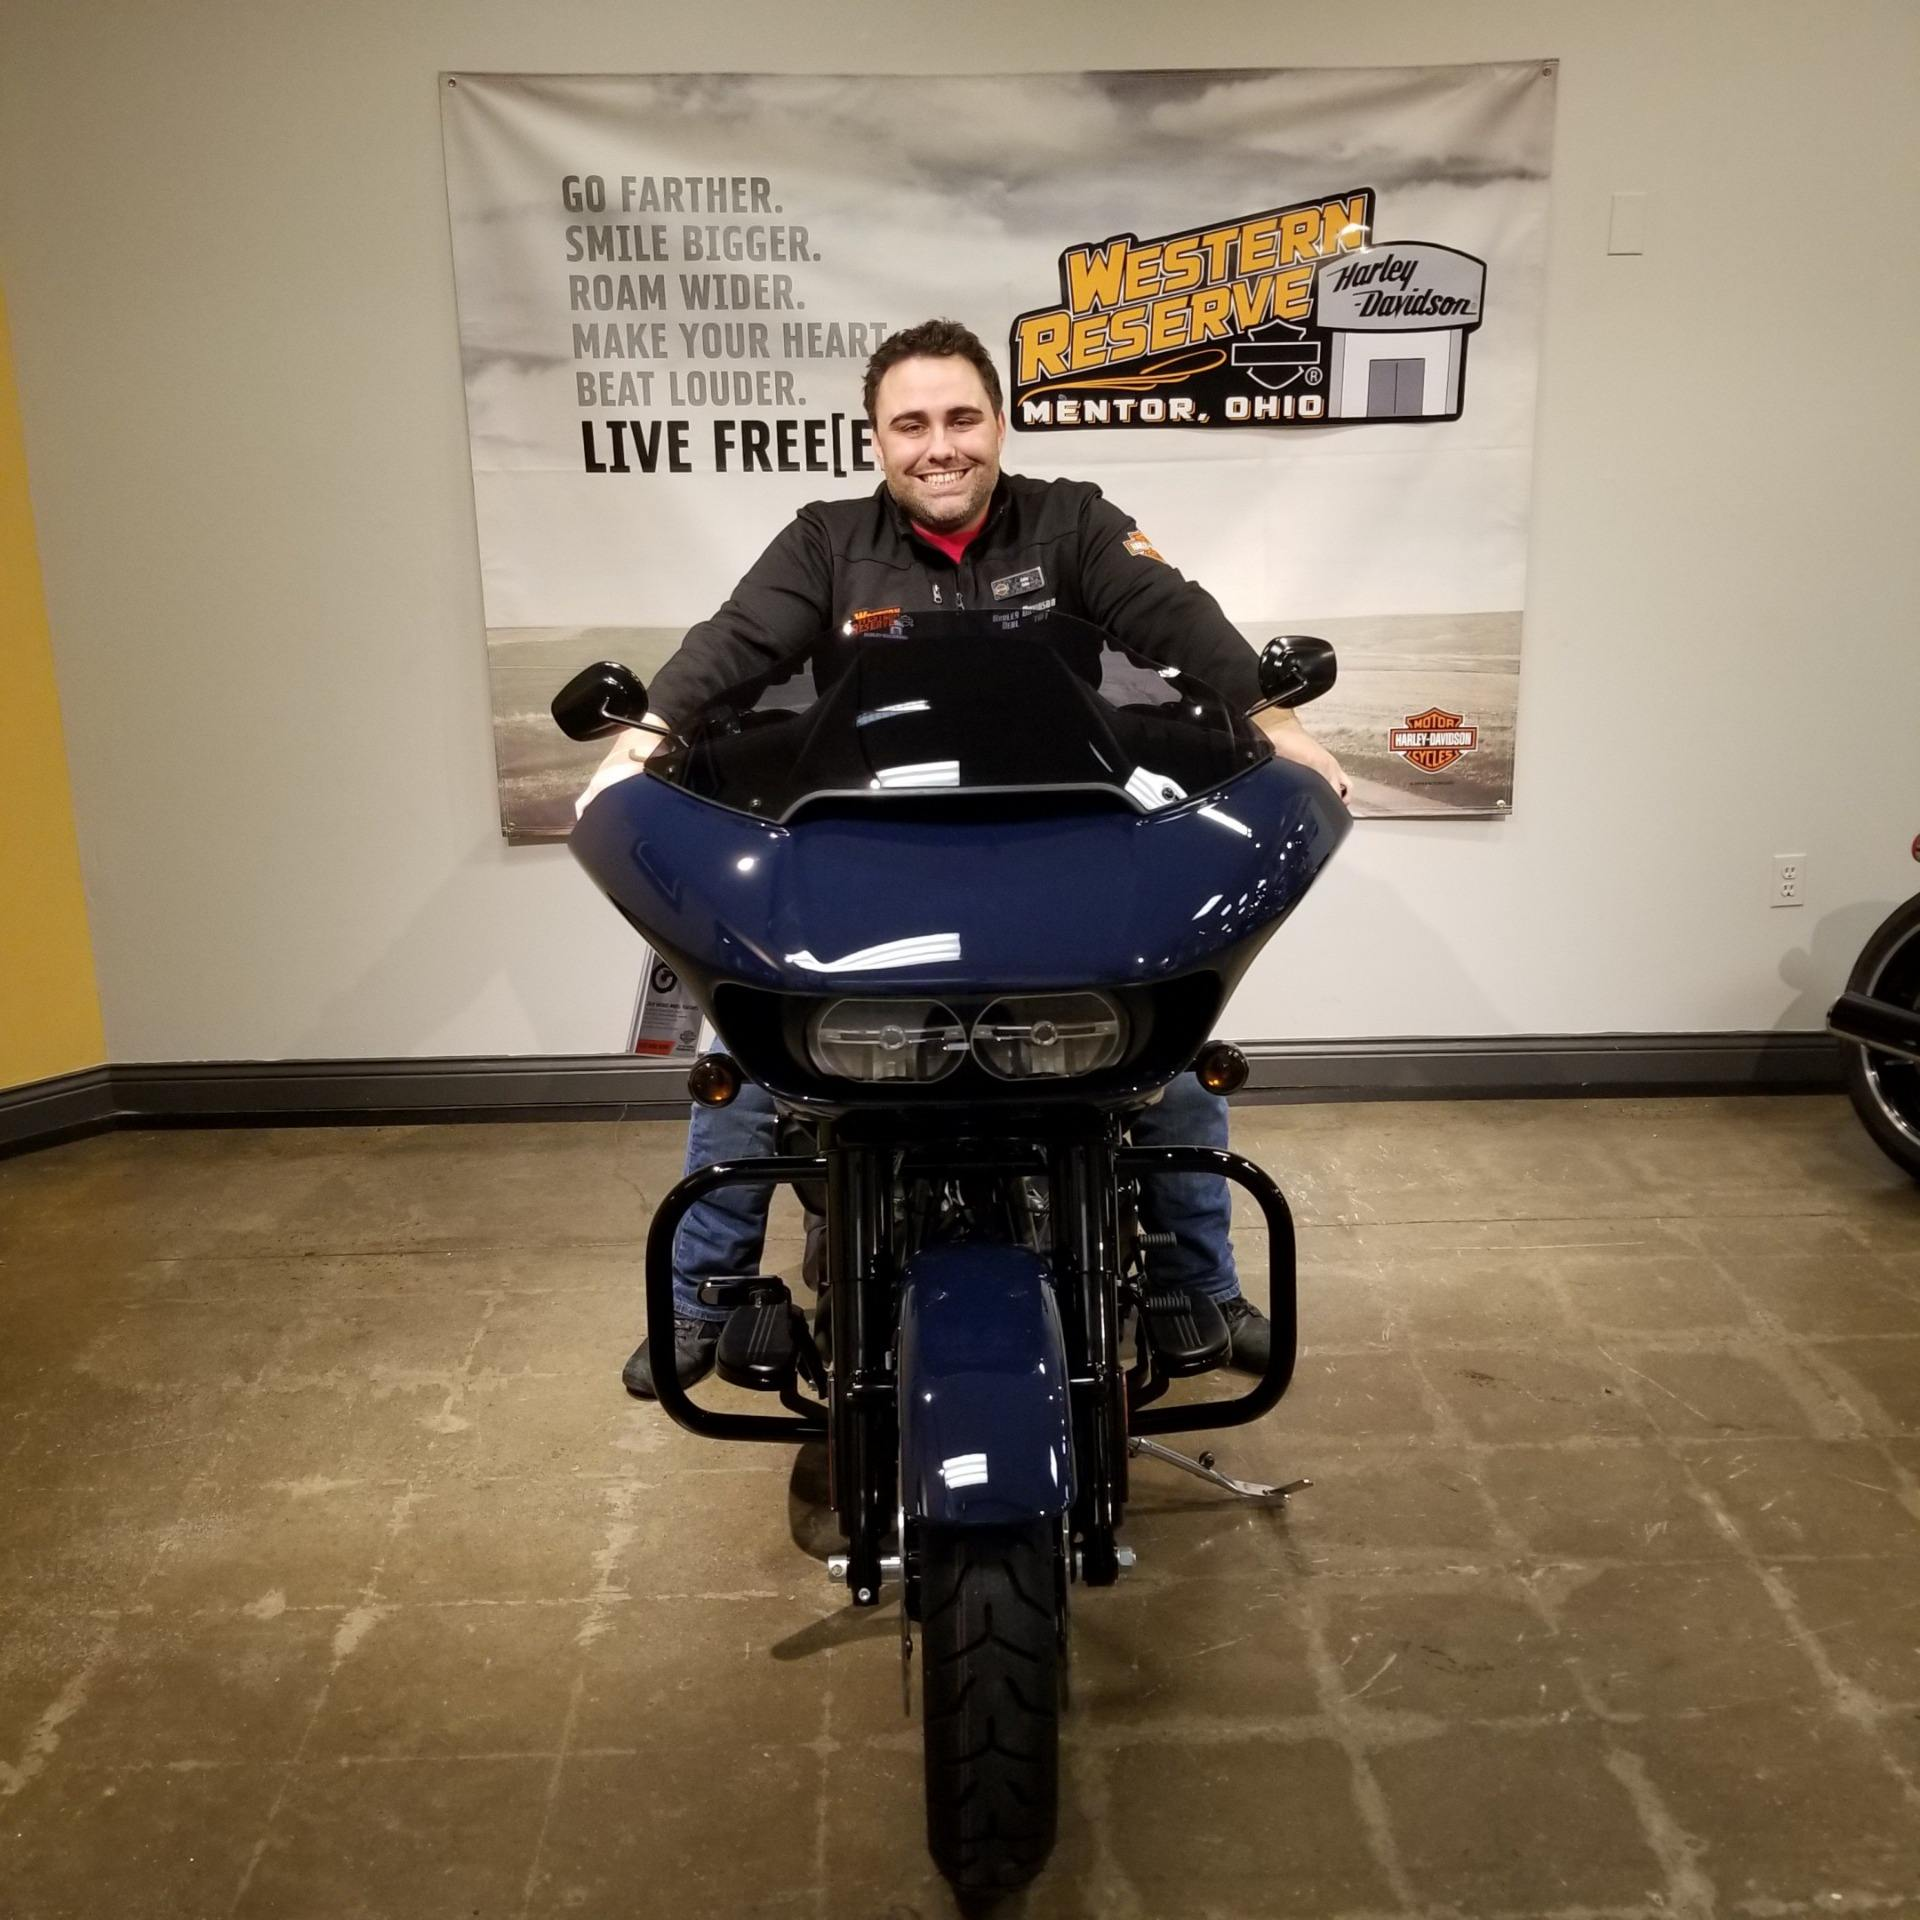 2019 Harley-Davidson Road Glide® Special in Mentor, Ohio - Photo 12